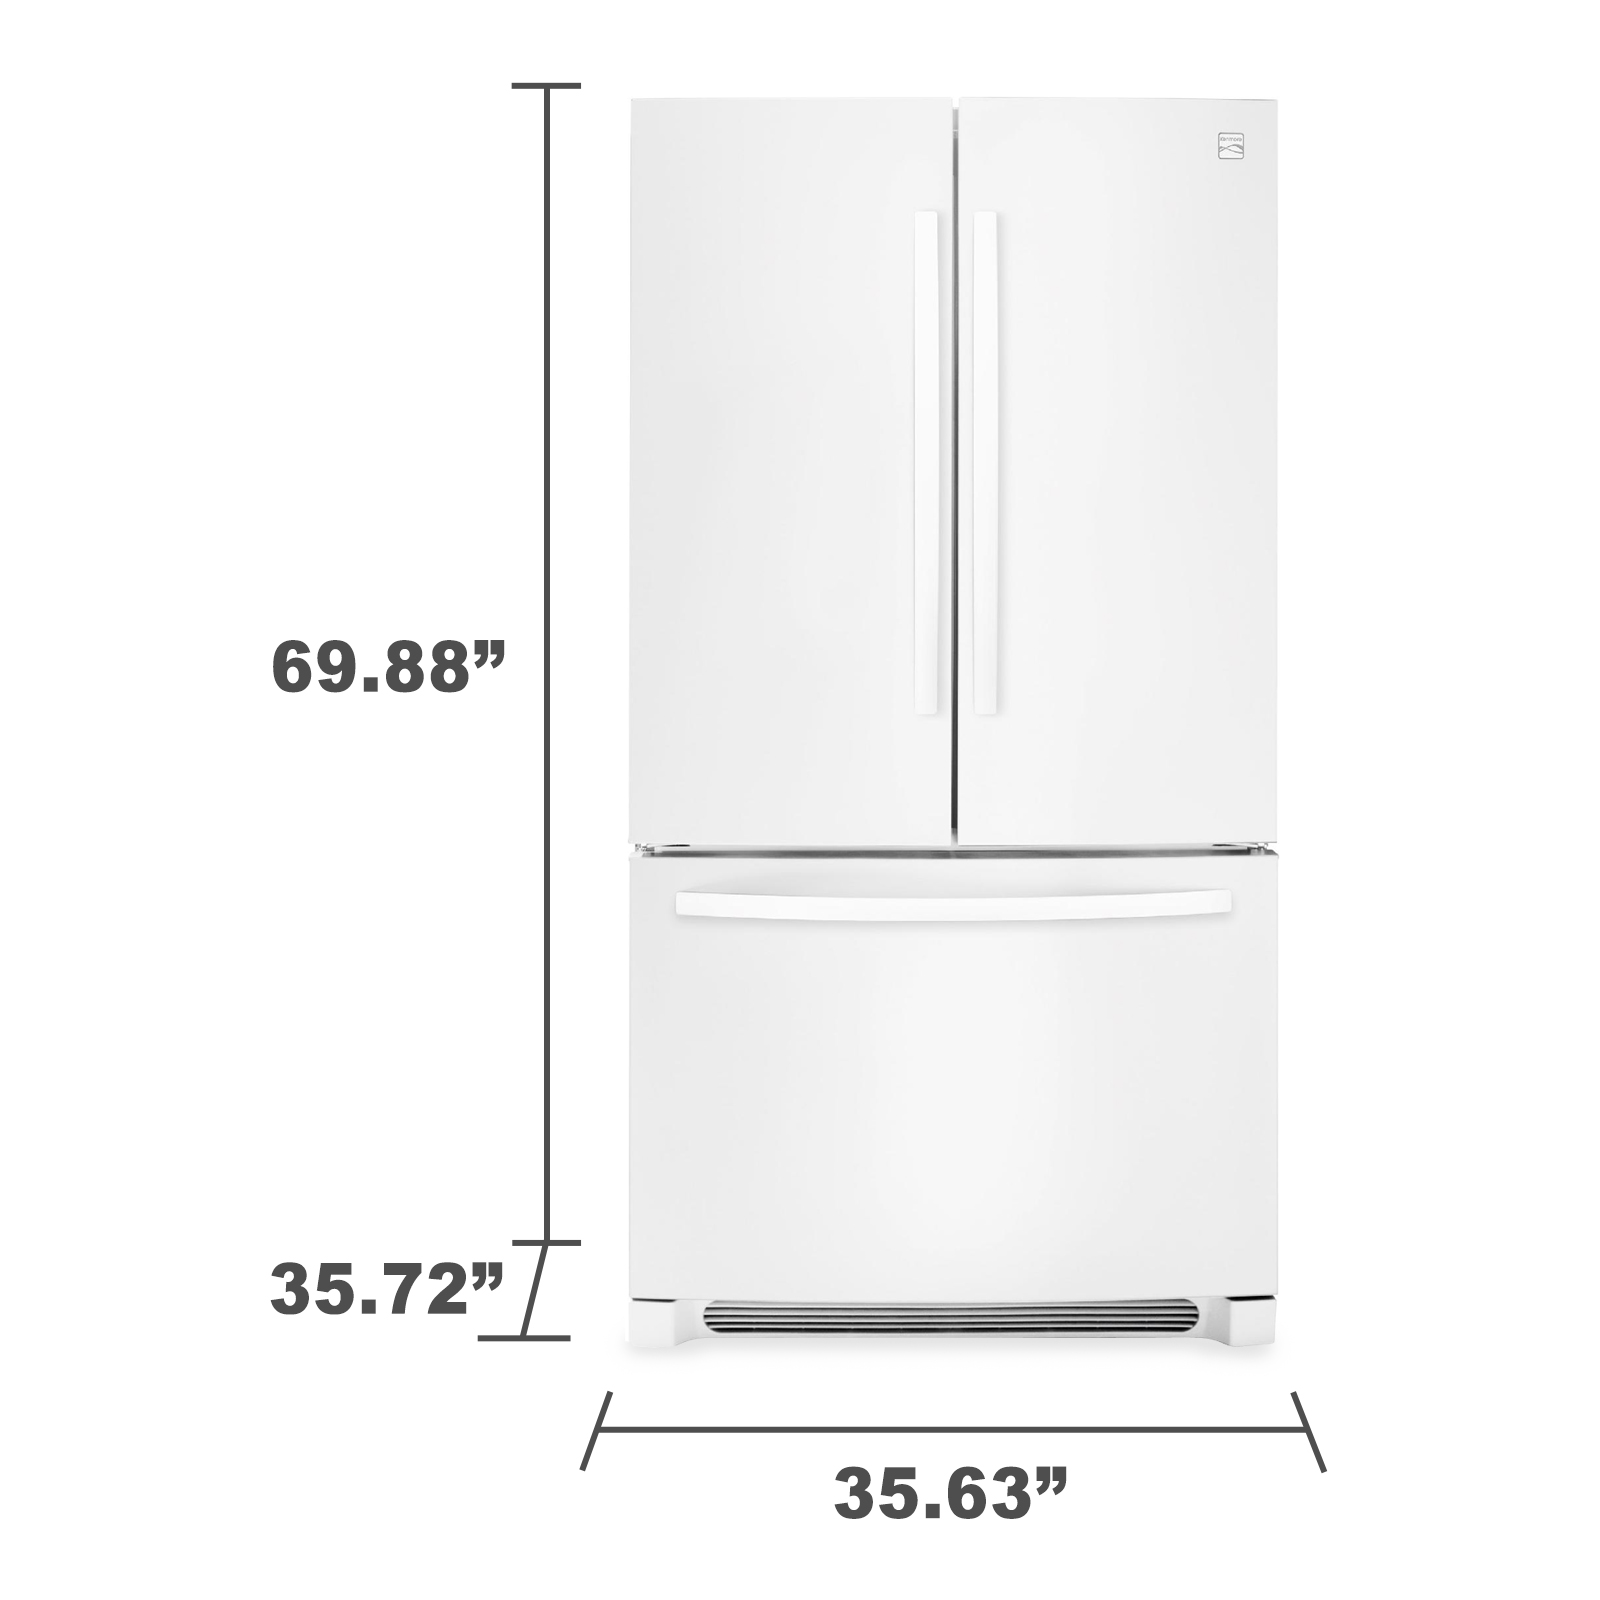 Kenmore 70412 27.6 cu. ft. French Door Refrigerator - White